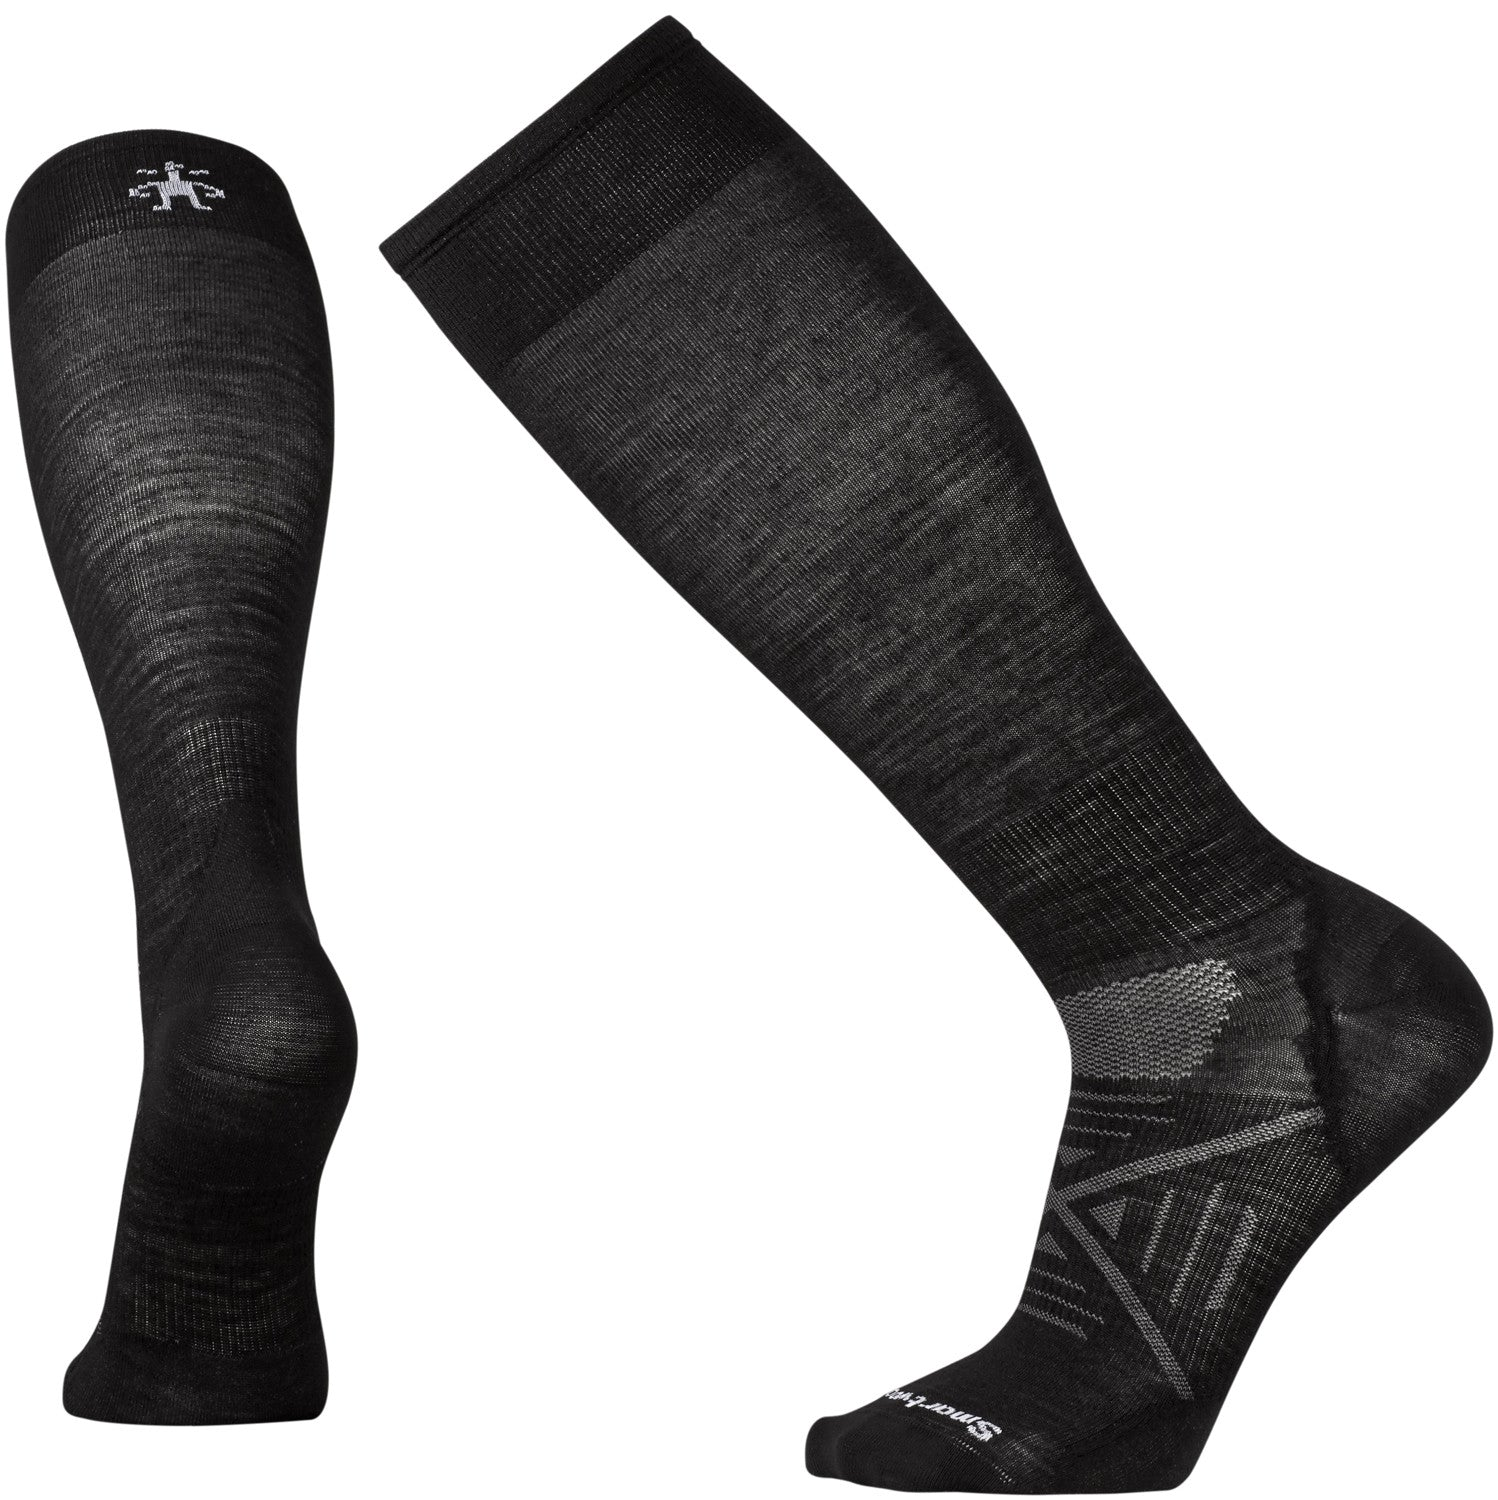 Smartwool Indestructawool™ PHD Ski Ultra Light - Black